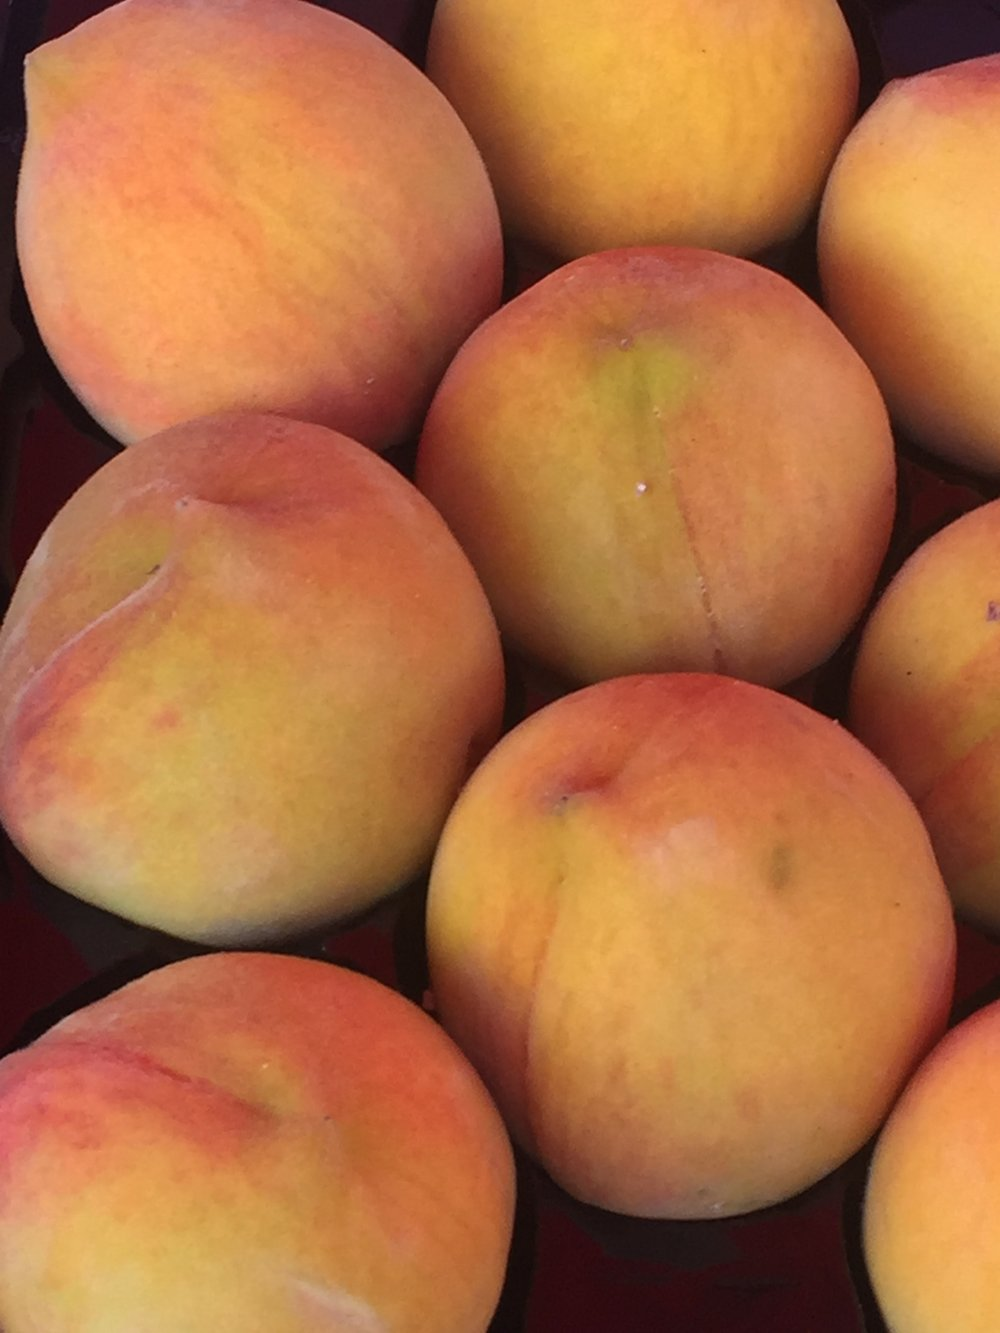 Peaches fight cancer, obesity, asthma, cholesterol, potassium deficiency, anti-aging & ensure healthy eye sight.